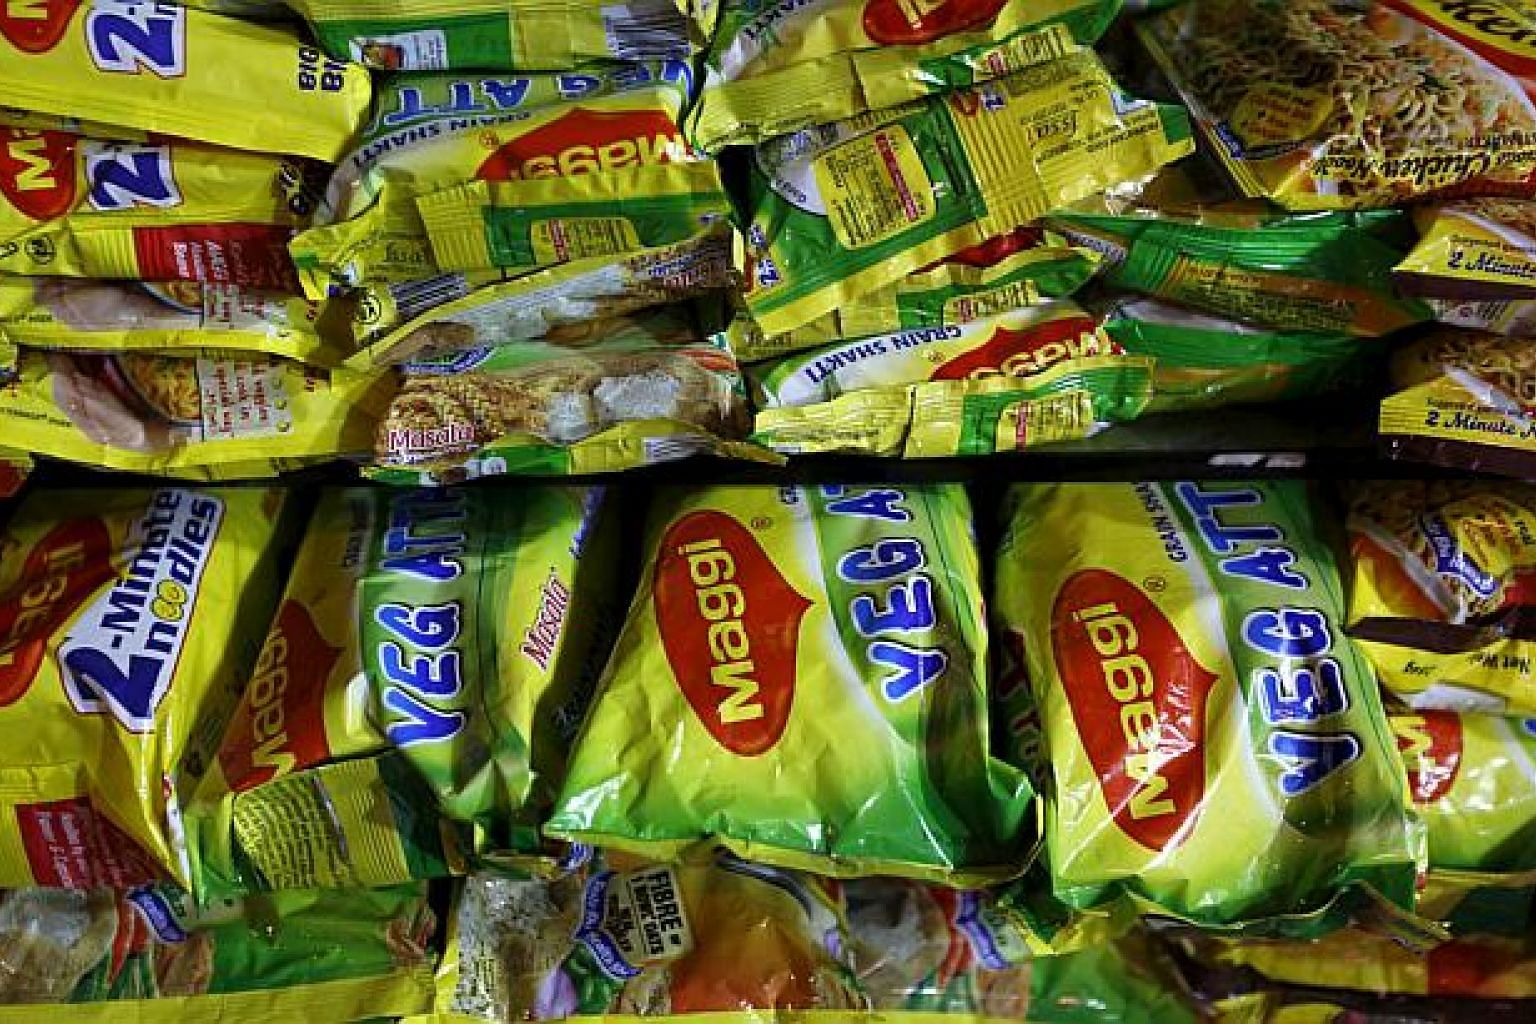 Packets of Nestle's Maggi instant noodles are seen on display at a grocery store in Mumbai, India, on June 3, 2015. Singapore importers have been ordered to suspend the sale of Maggi brand instant noodles produced in India, the Agri-Food and Veterina